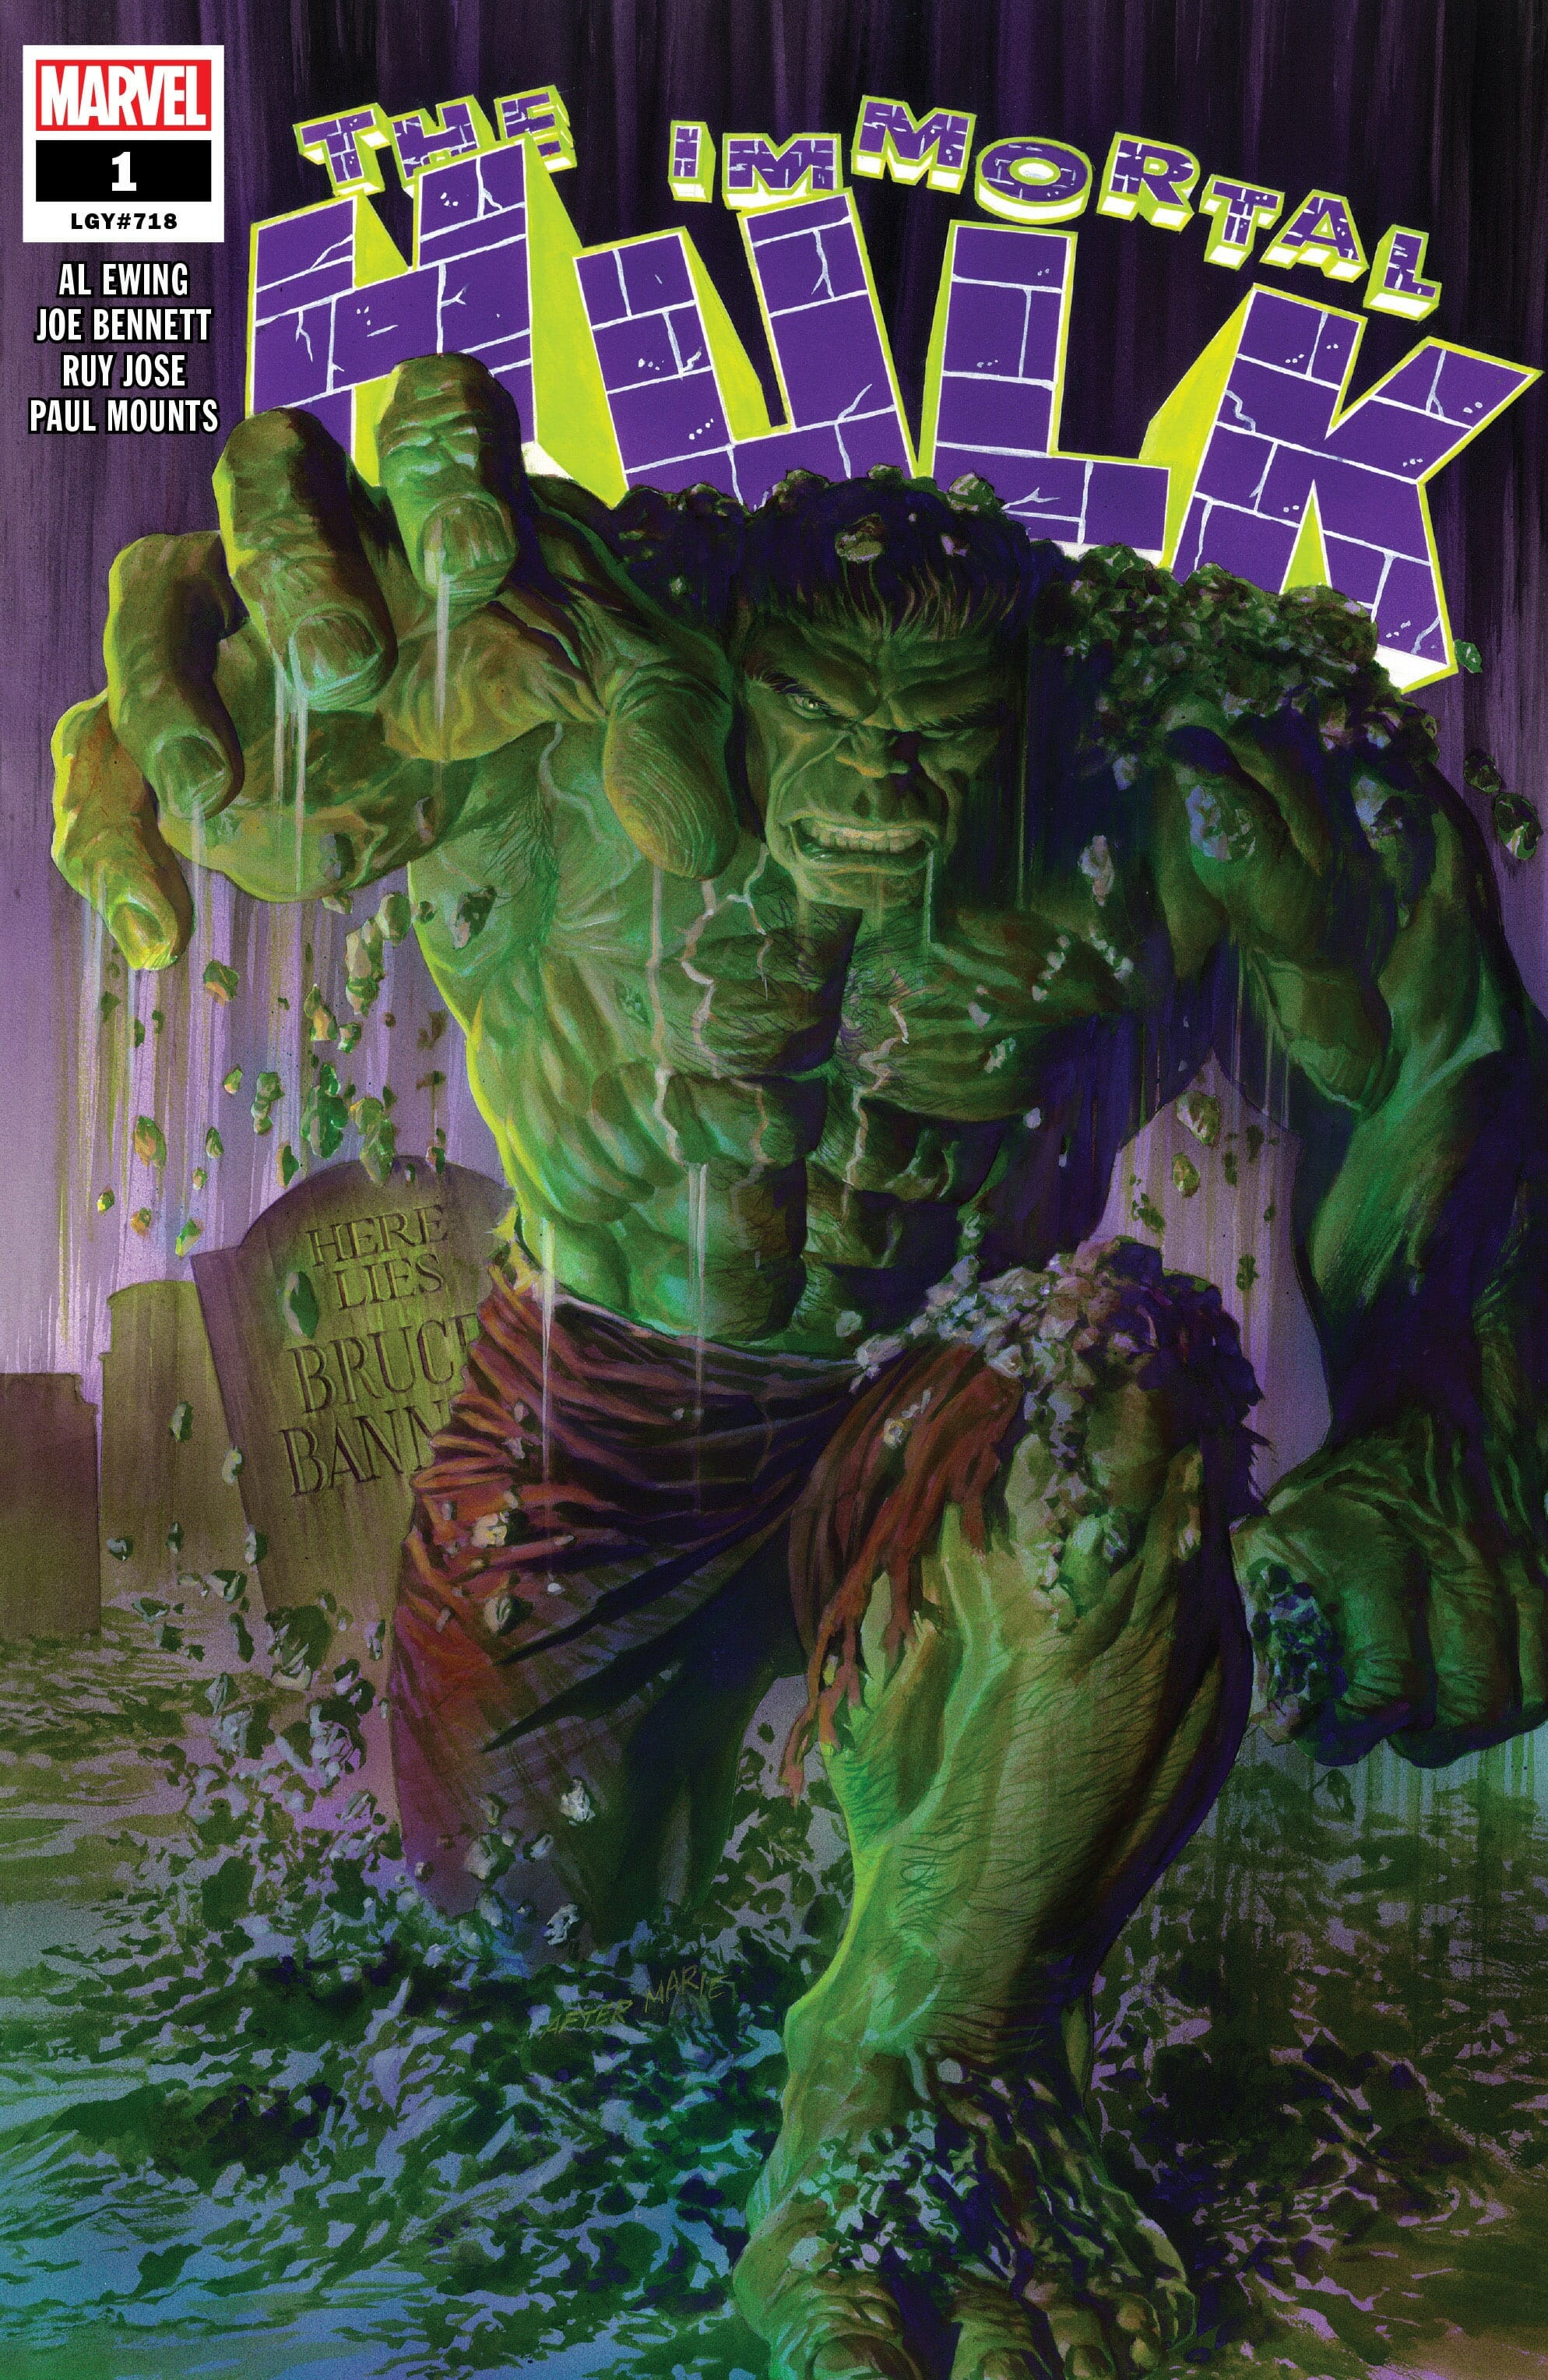 To bring things full circle, In 2018, Marvel released a comic series entitled The Immortal Hulk, 34-years after Hulk Hogan used the same name. Coincidence? We think not!